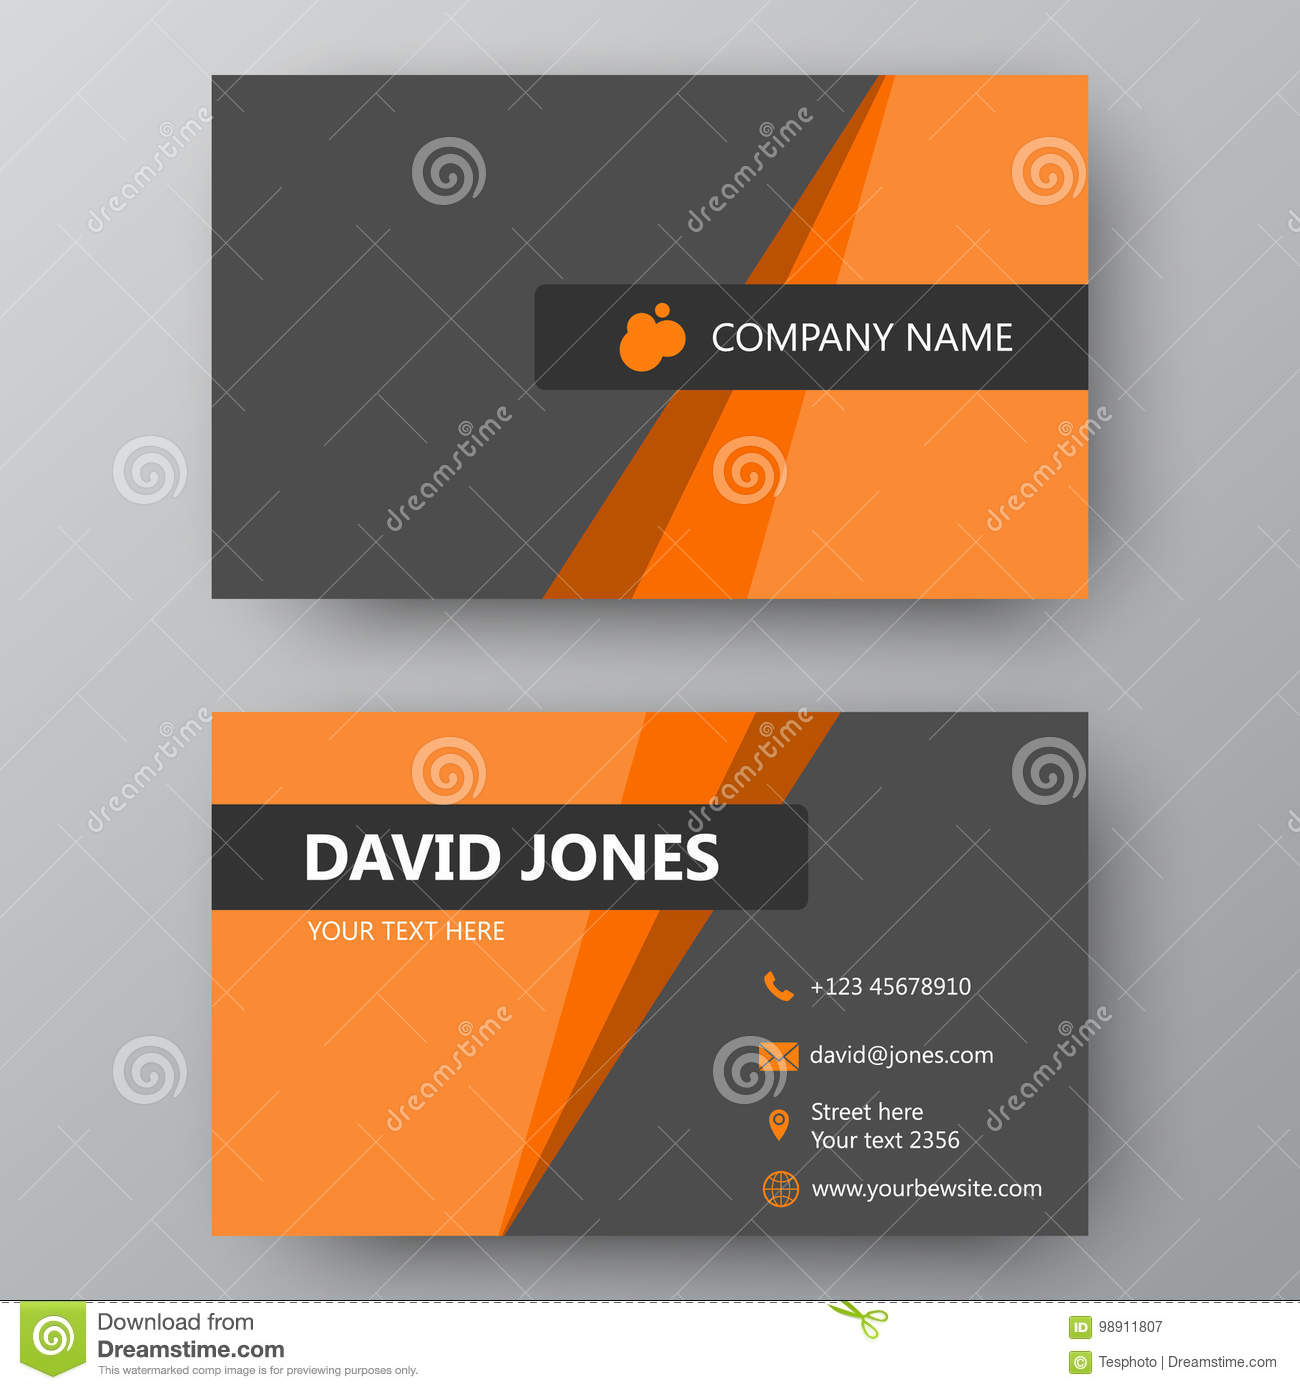 Modern presentation card with company logo vector business card modern presentation card with company logo vector business card branding cards flashek